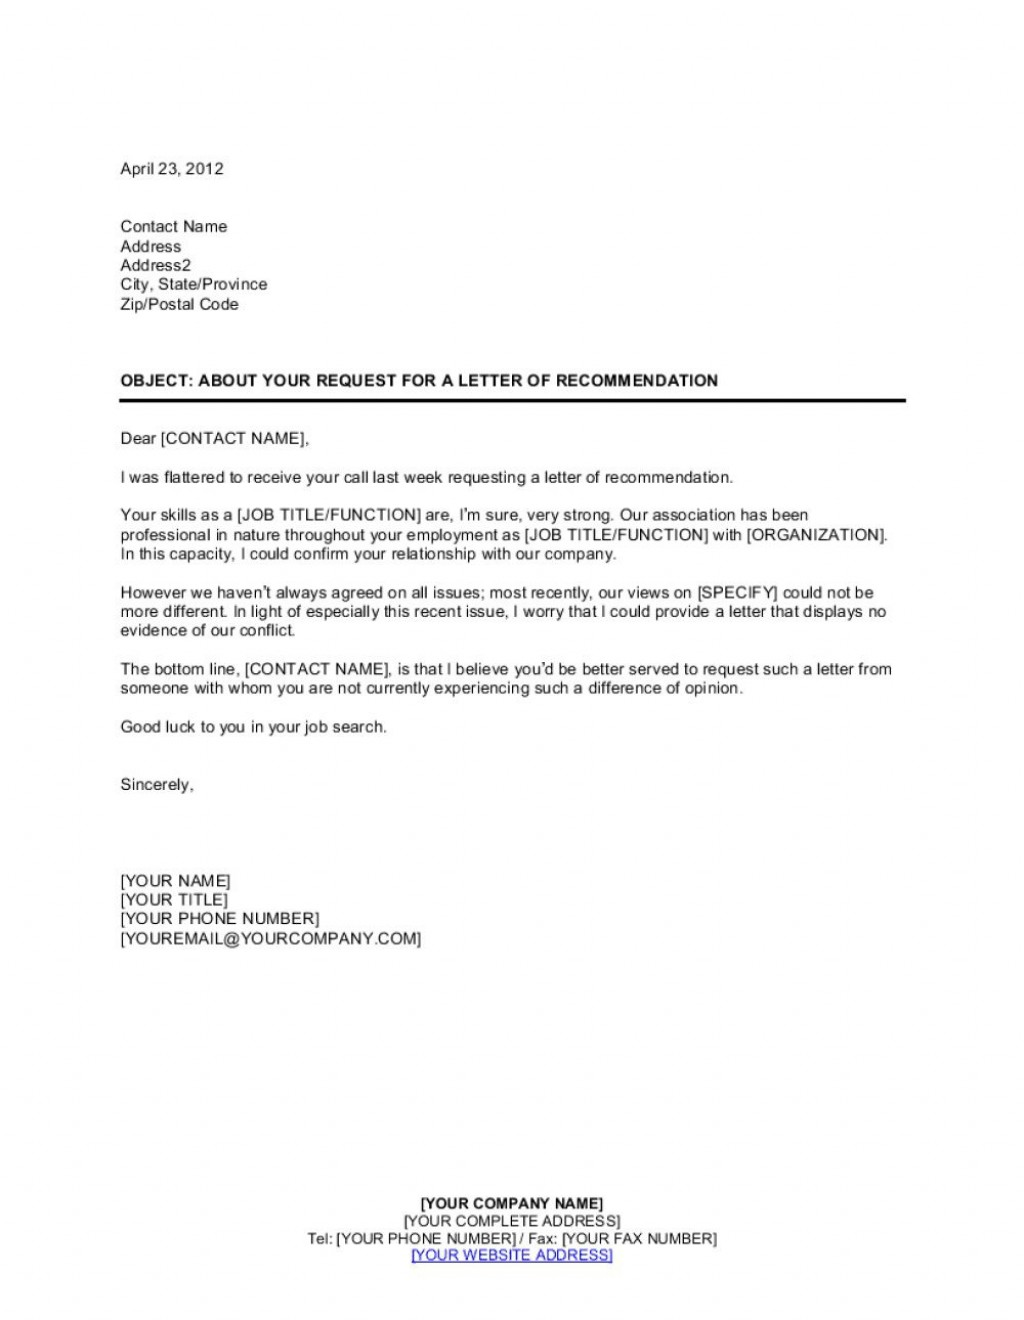 001 Frightening Letter Of Recomendation Template Highest Quality  Reference For Employment Sample Recommendation Teacher Student From EmployerLarge